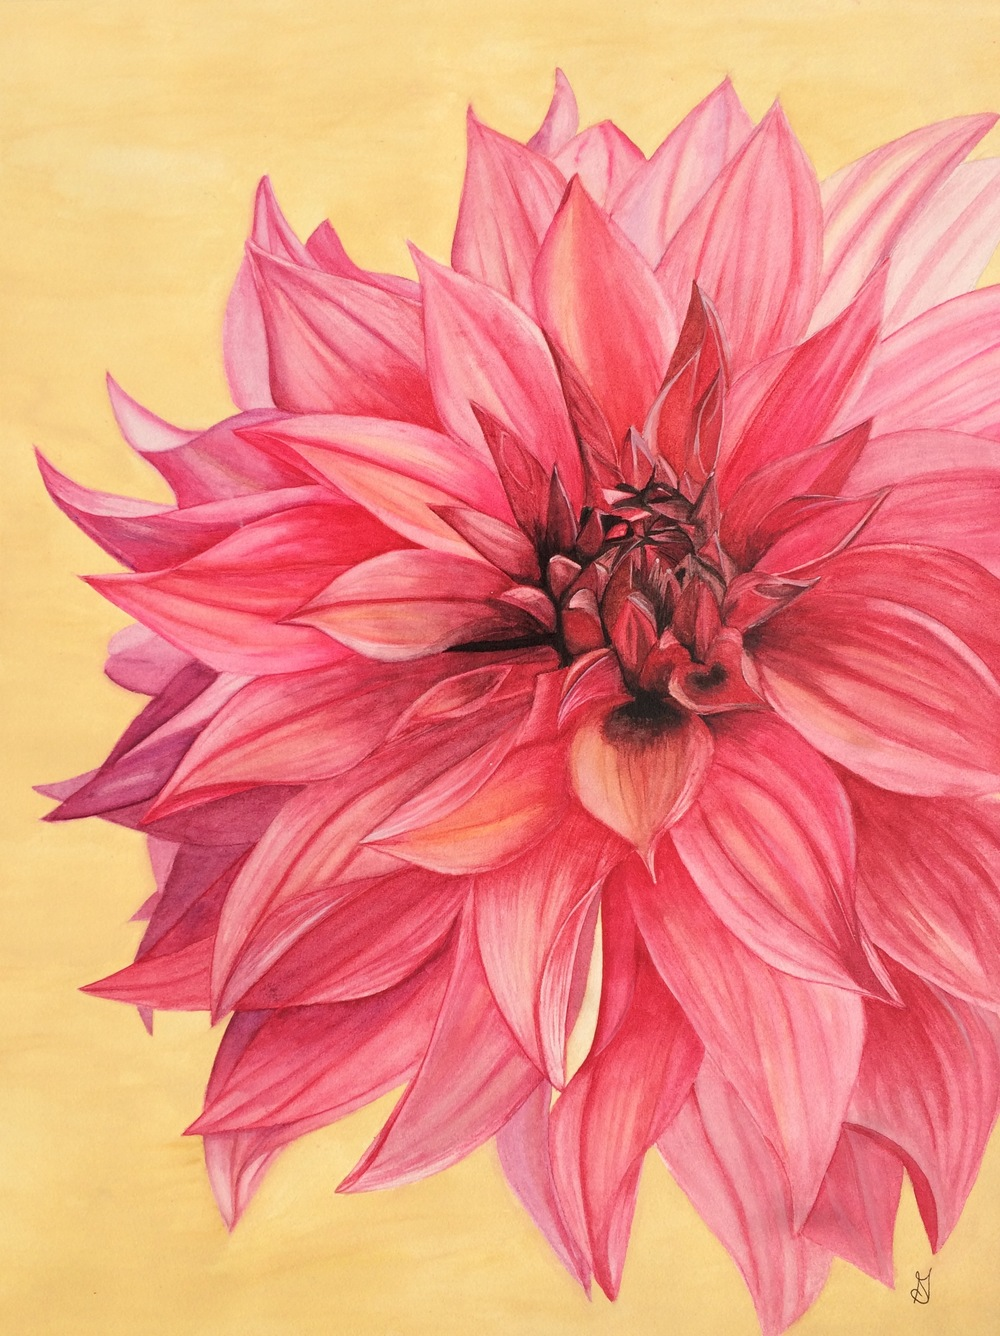 83 Giant Pink Flower Gswatercolor